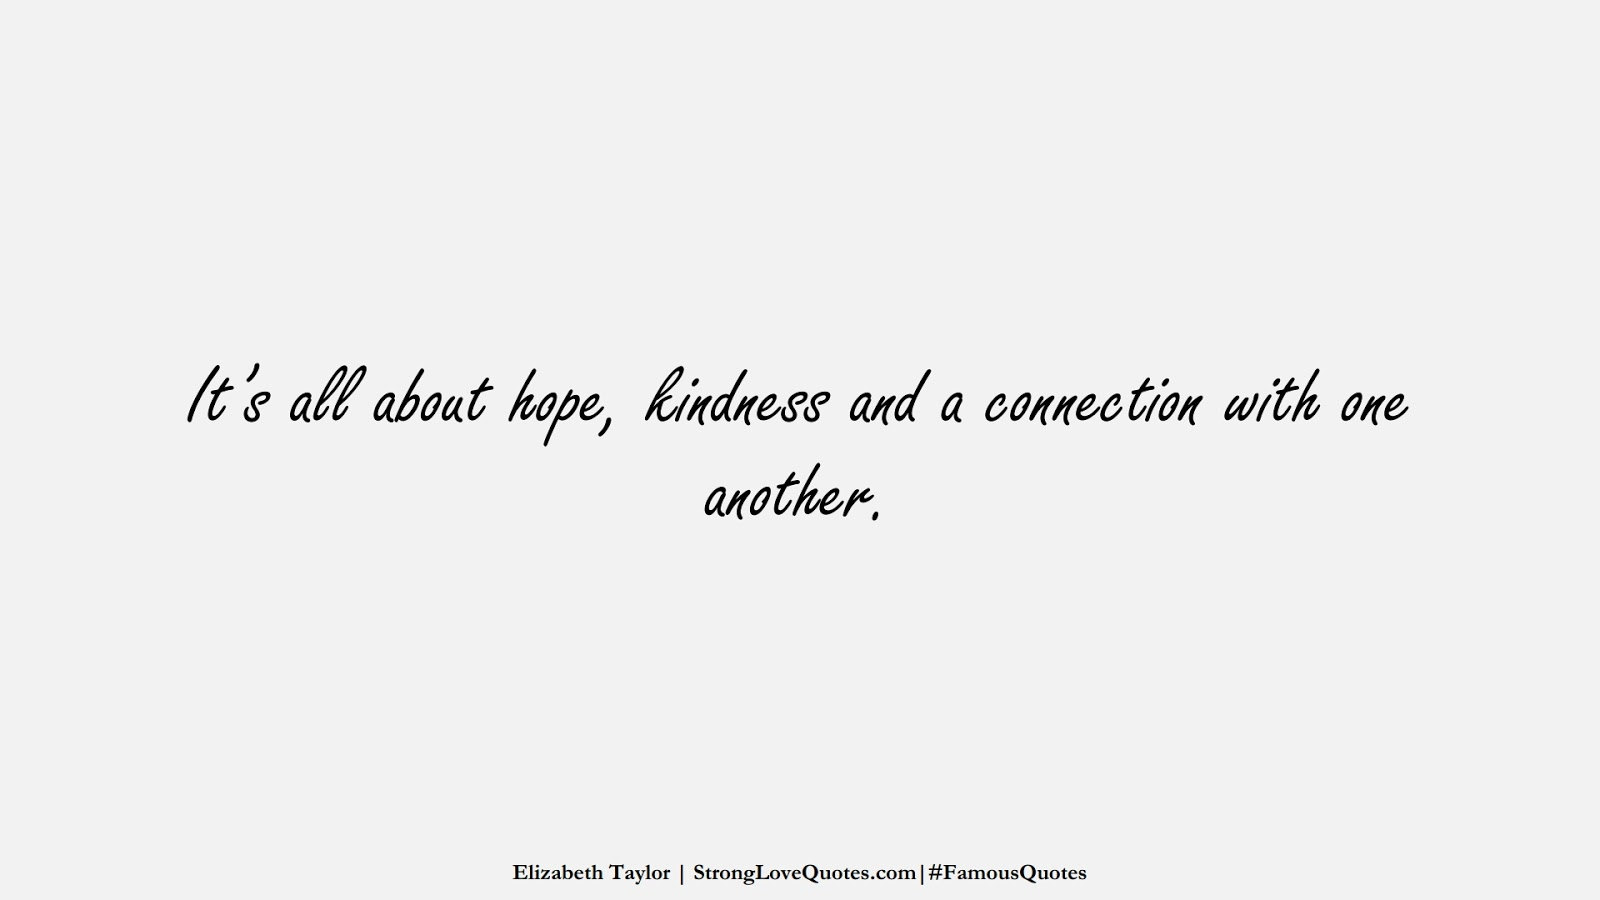 It's all about hope, kindness and a connection with one another. (Elizabeth Taylor);  #FamousQuotes